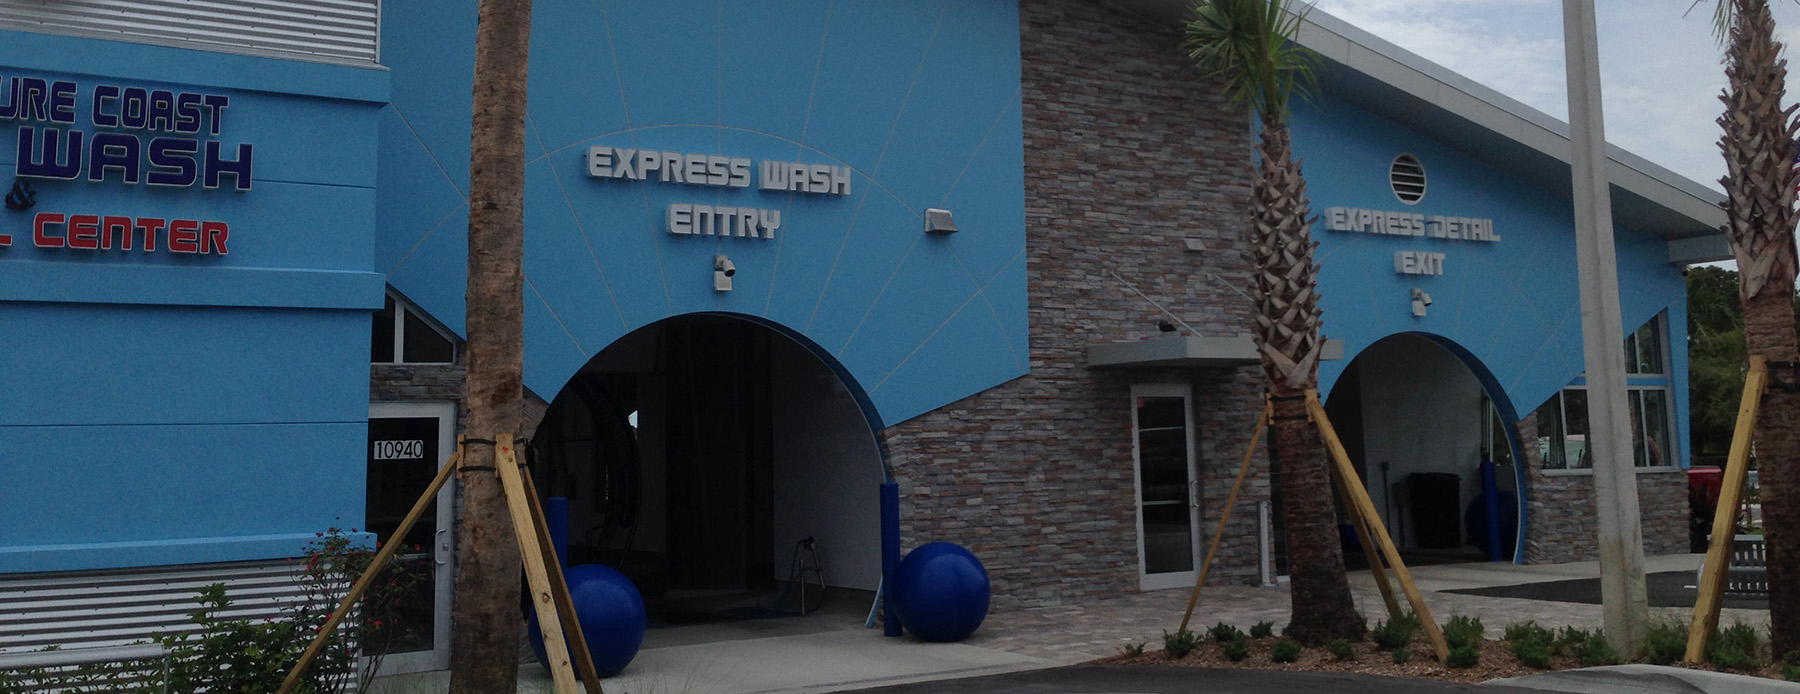 Car Wash Entrance and Exit Design